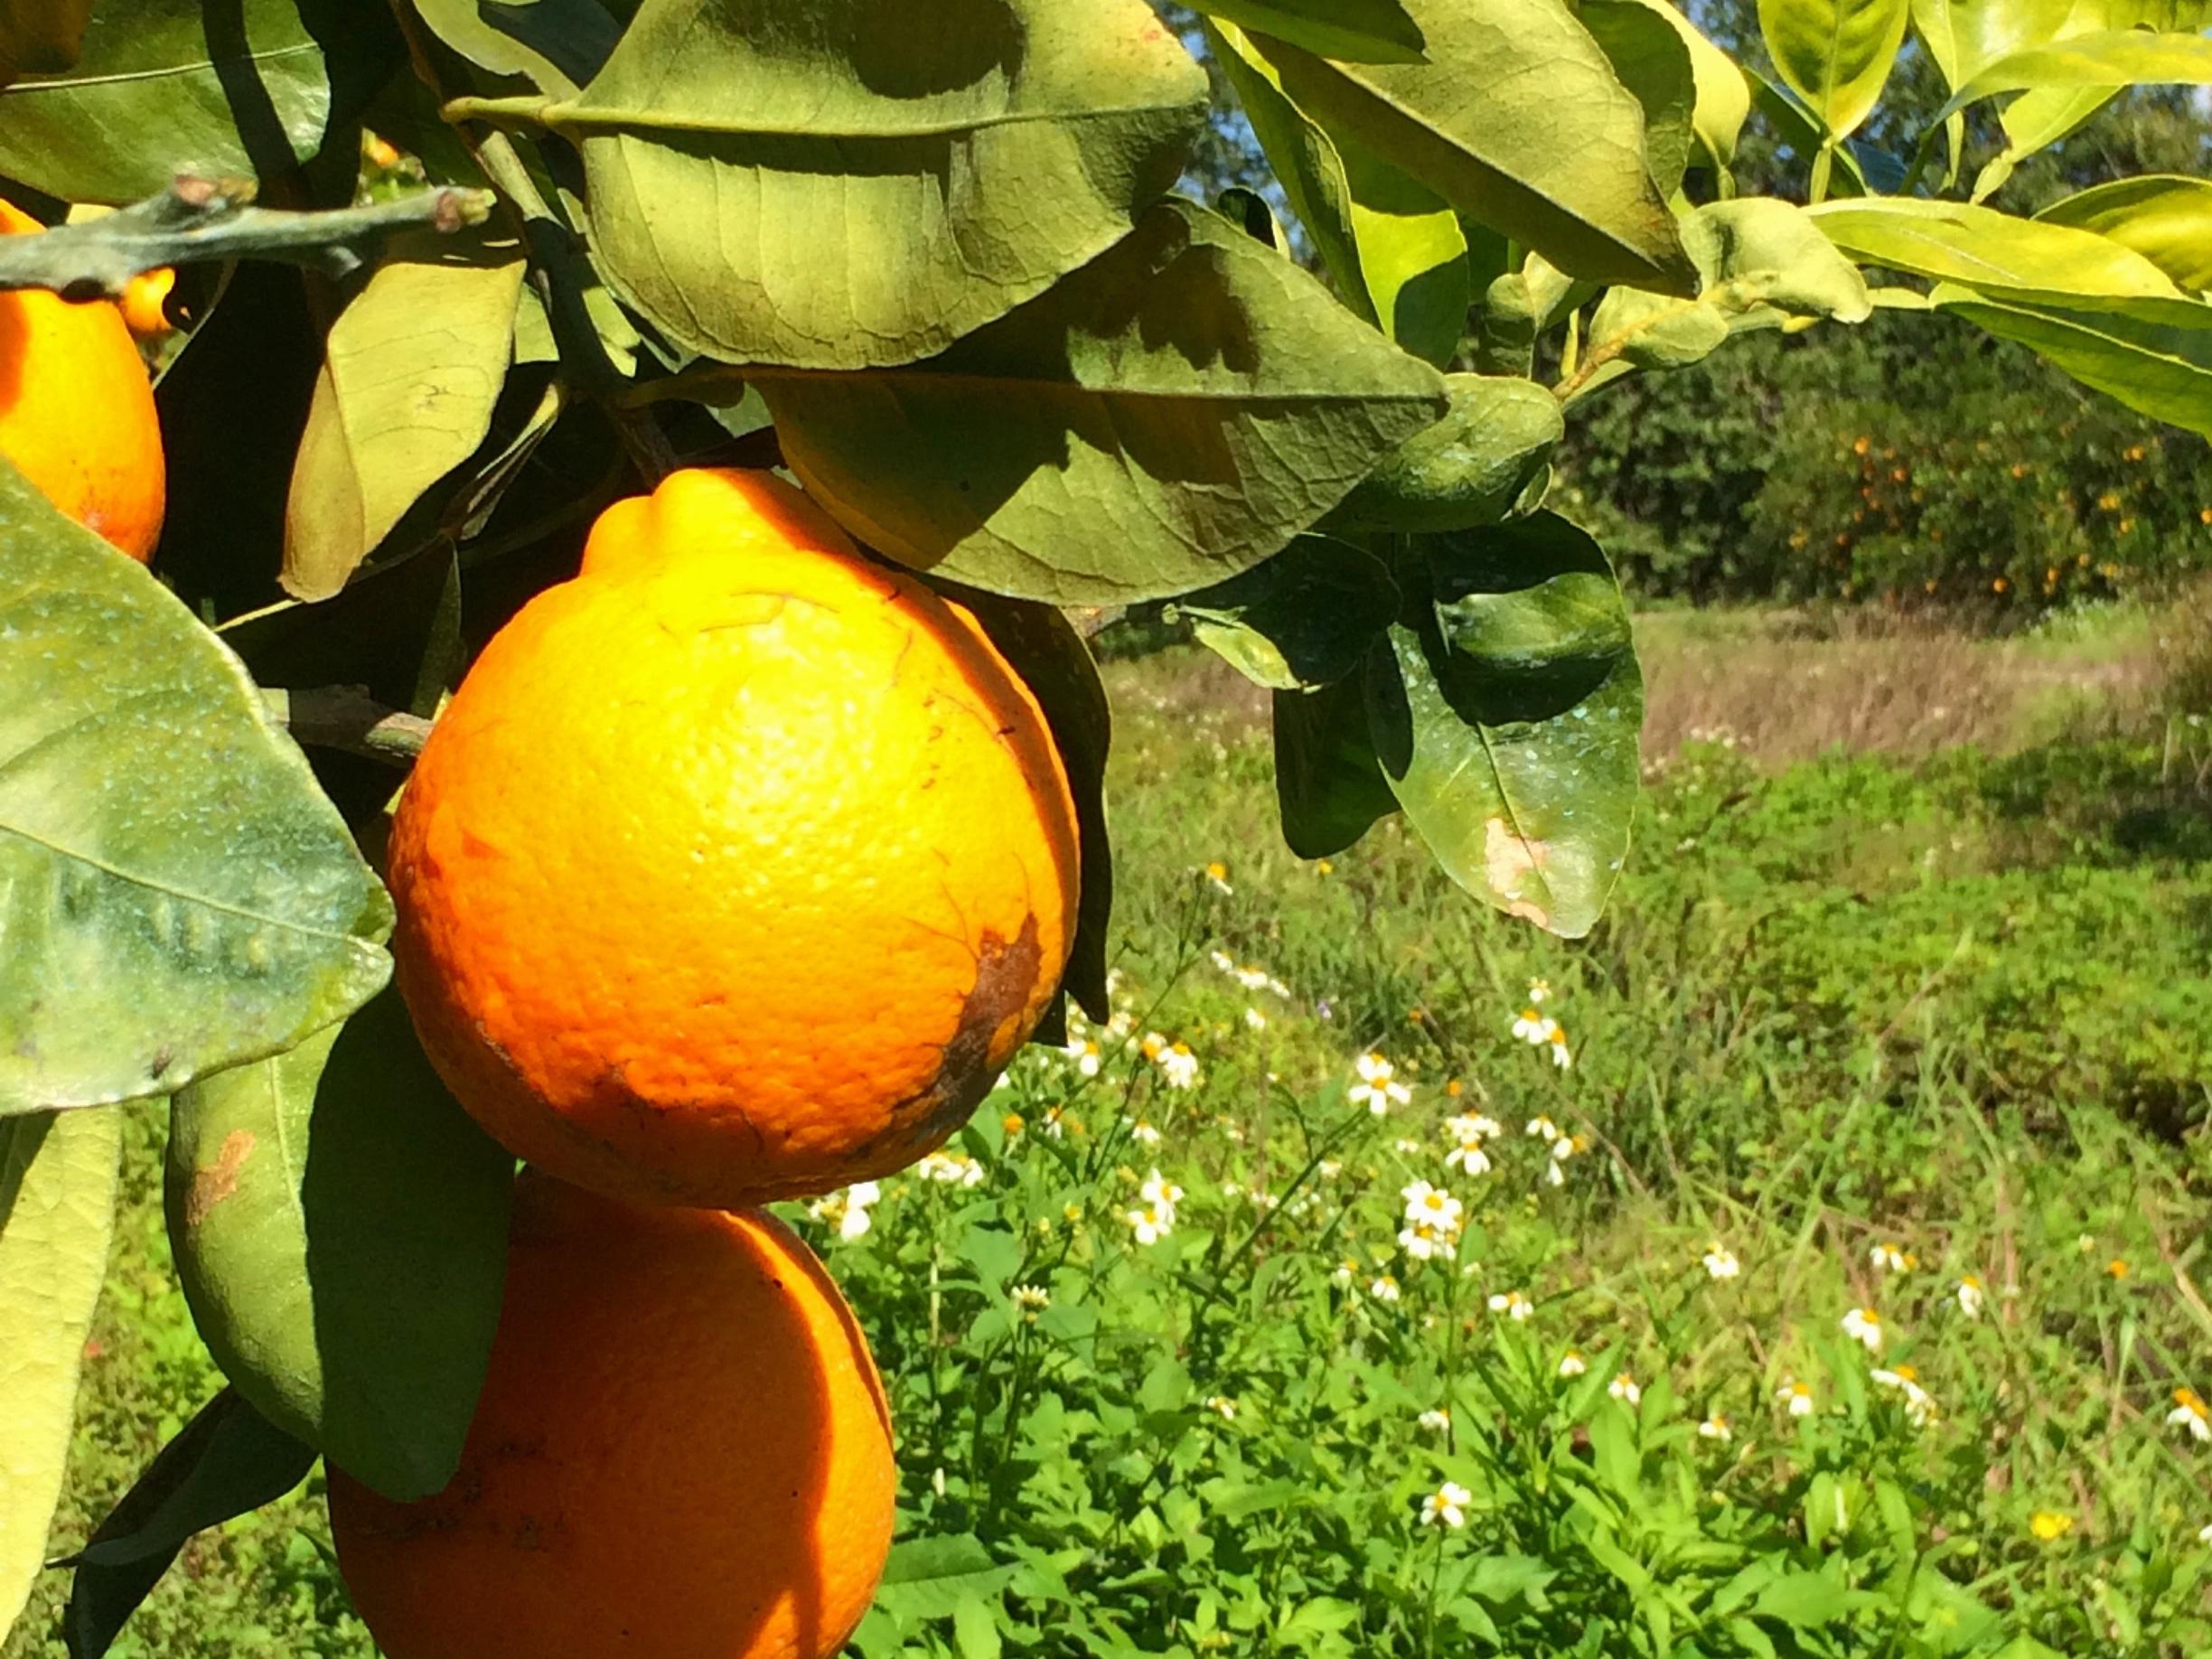 The unique Honeybell! - Many citrus lovers have never heard of a Honeybell before. If you've never tried a Honeybell you're missing out on one of the most unique varieties of citrus around! This variety is a Minneola Tangelo, nicknamed